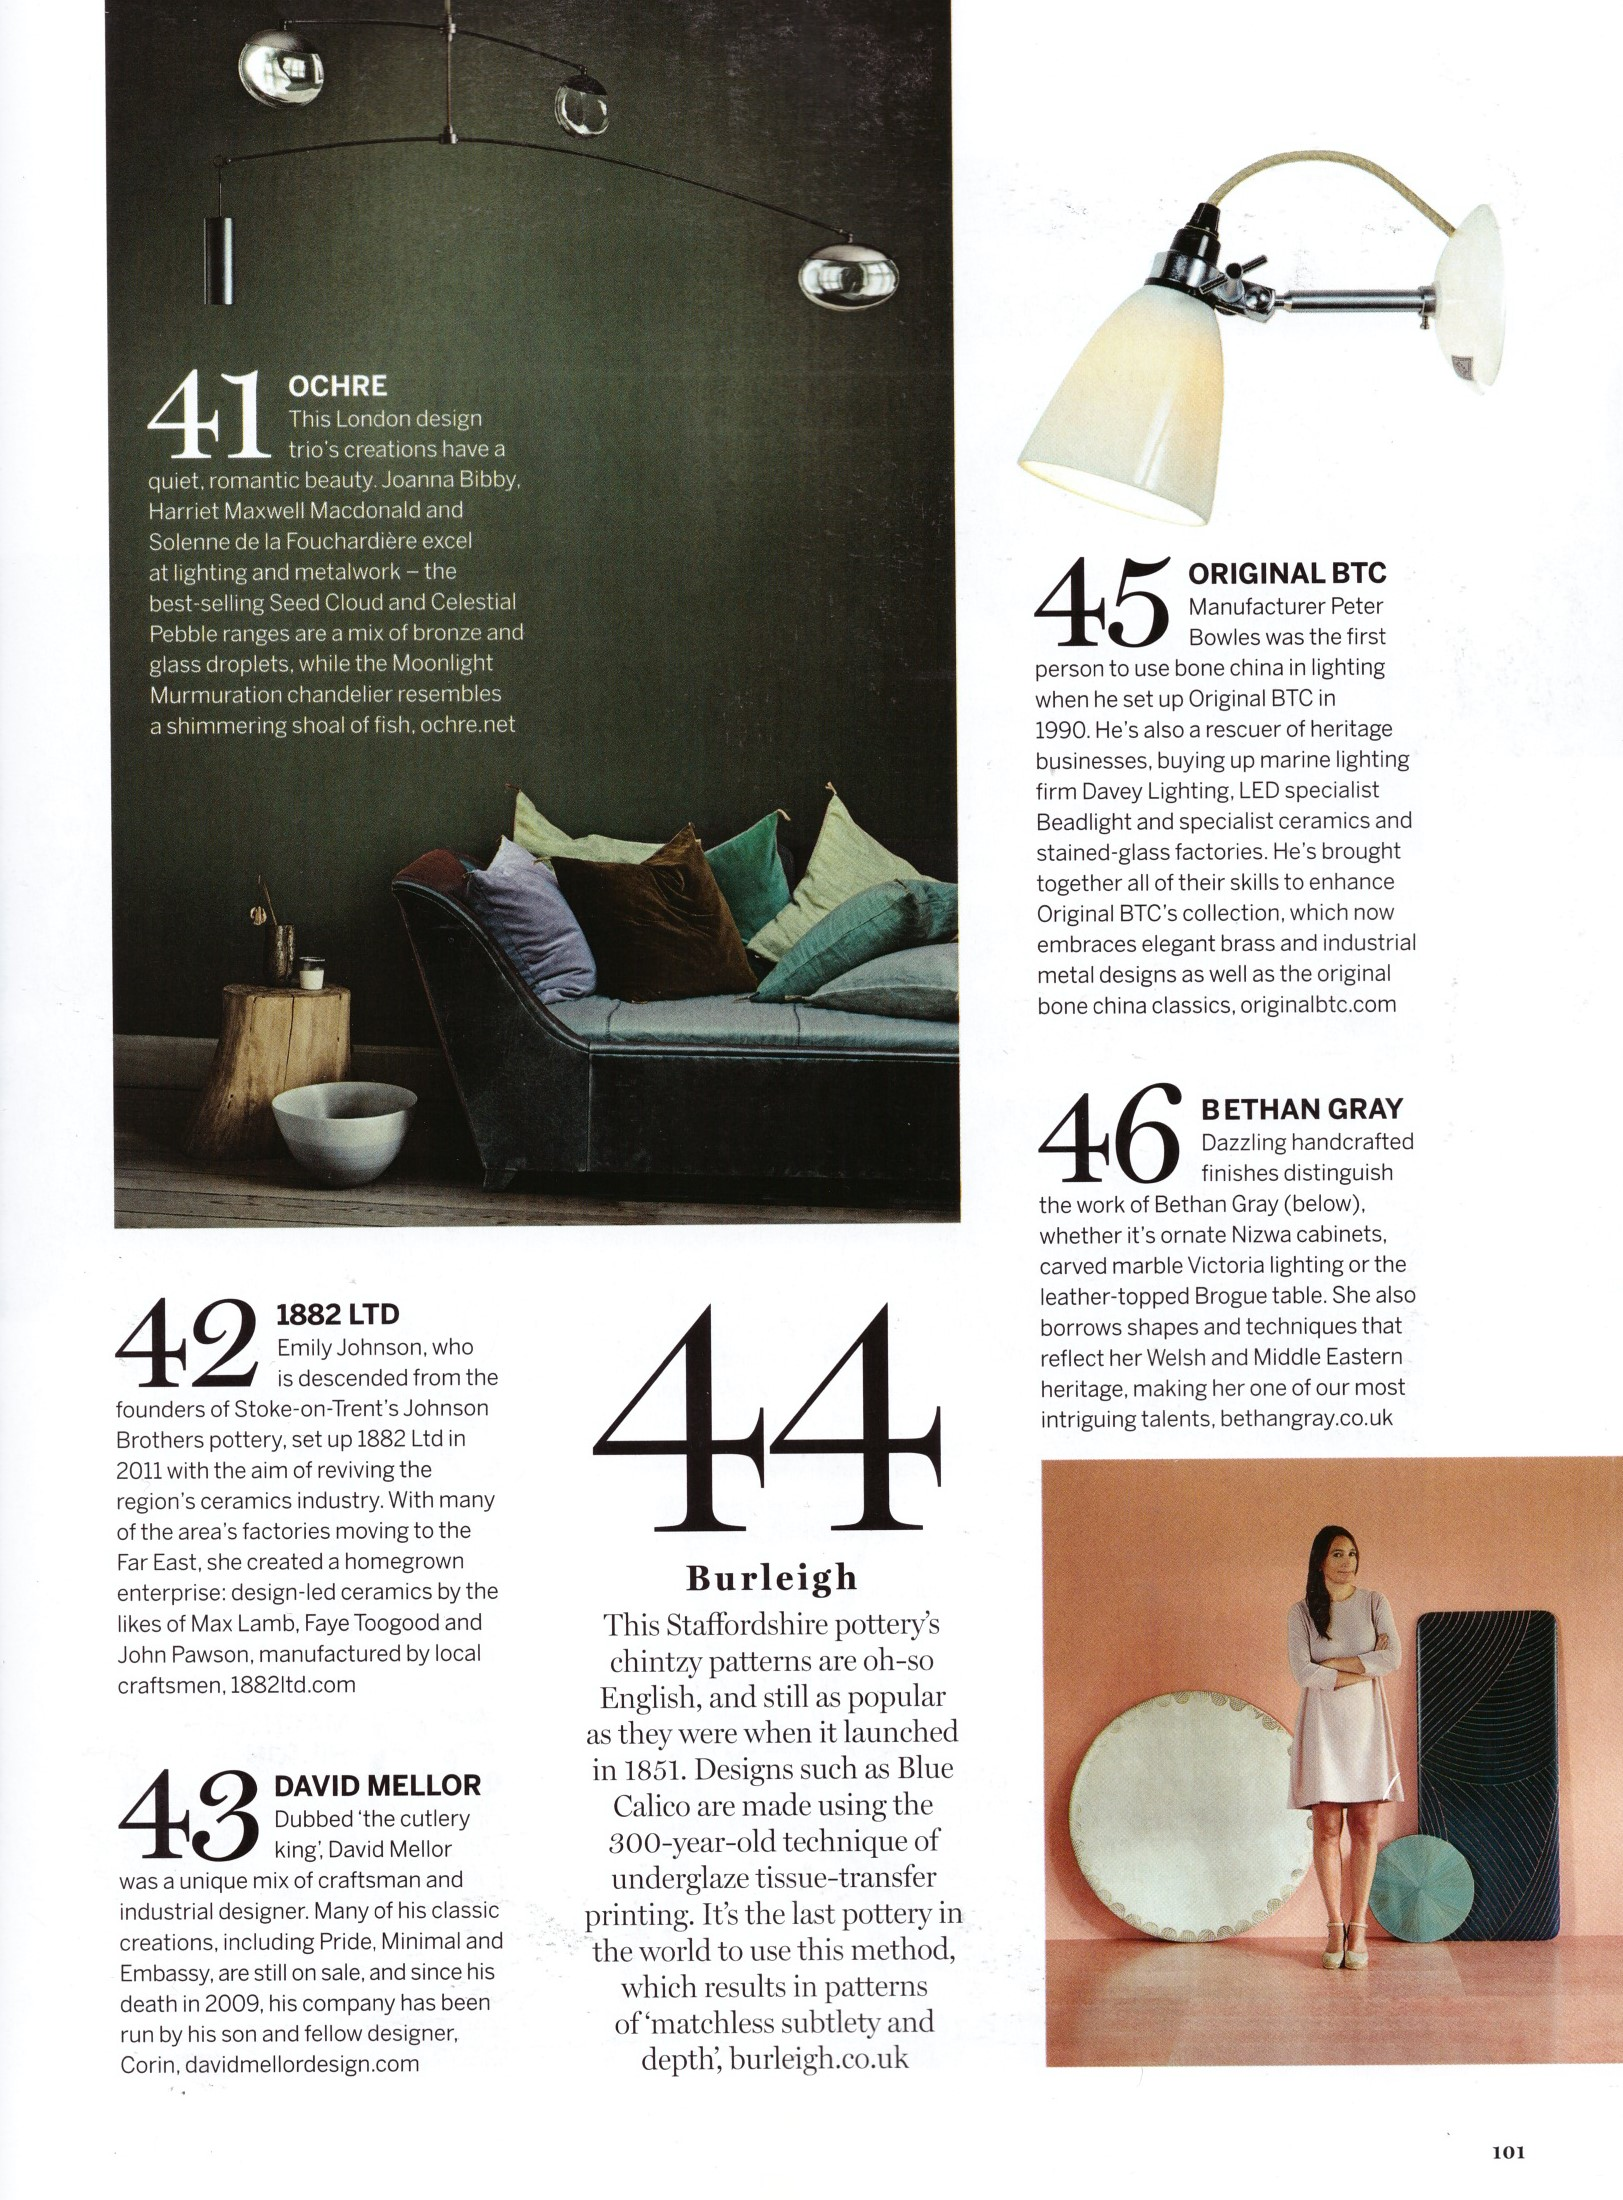 We're thrilled Original BTC made Homes & Gardens' centenary issue hotlist of design movers and shakers